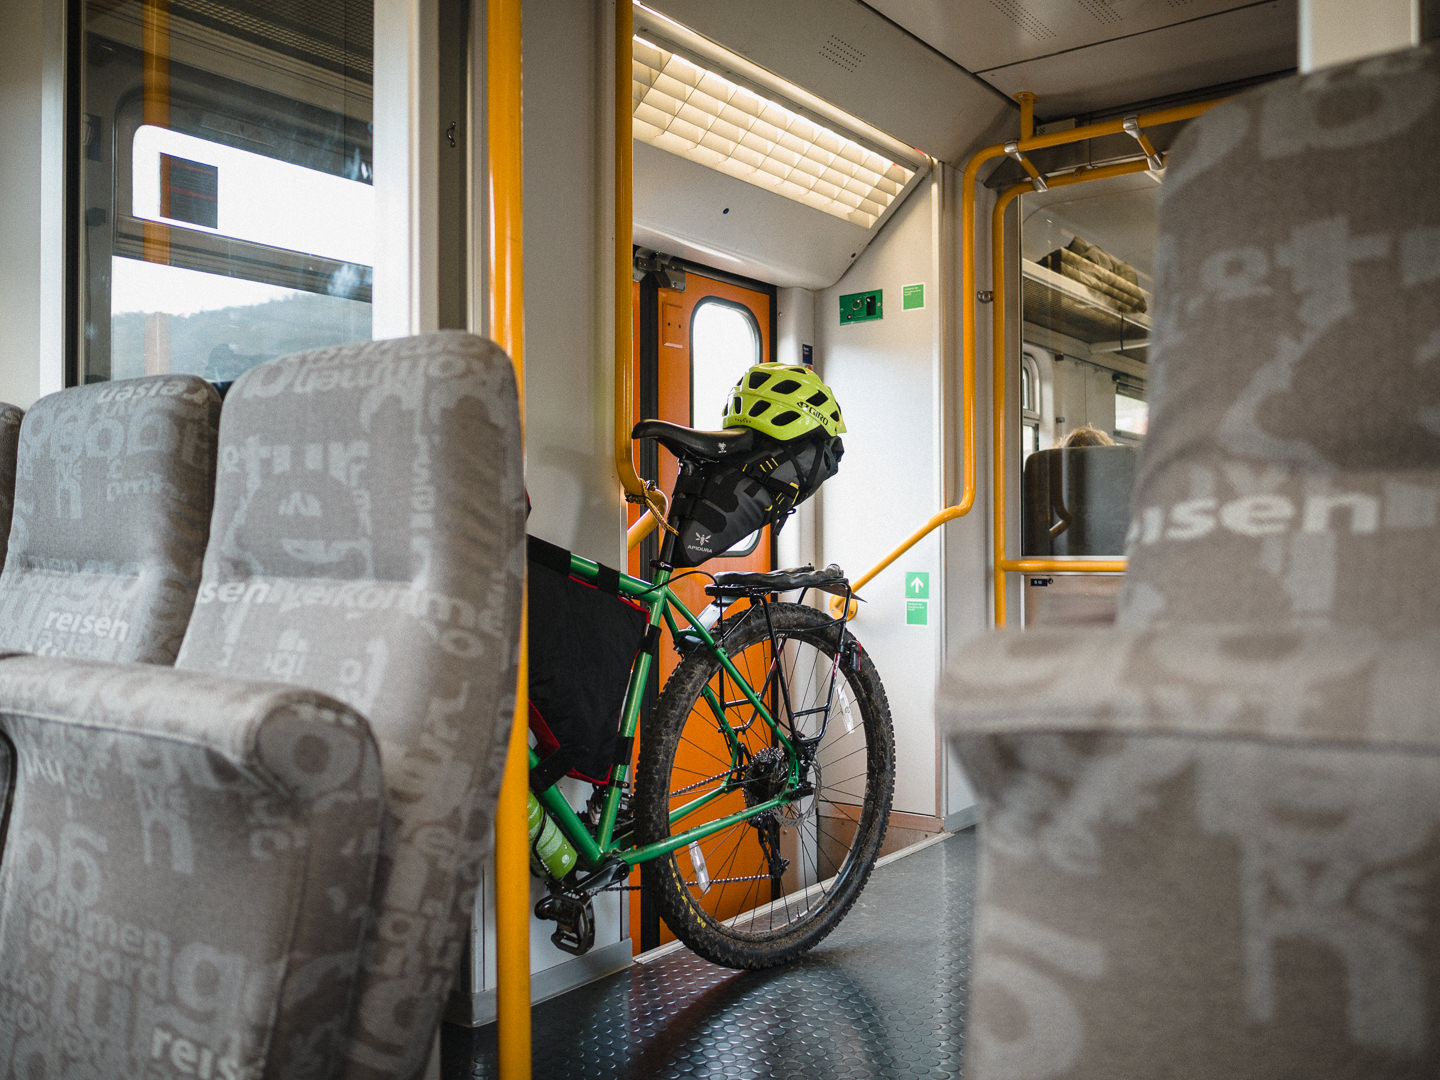 Touring bicycle on a train.